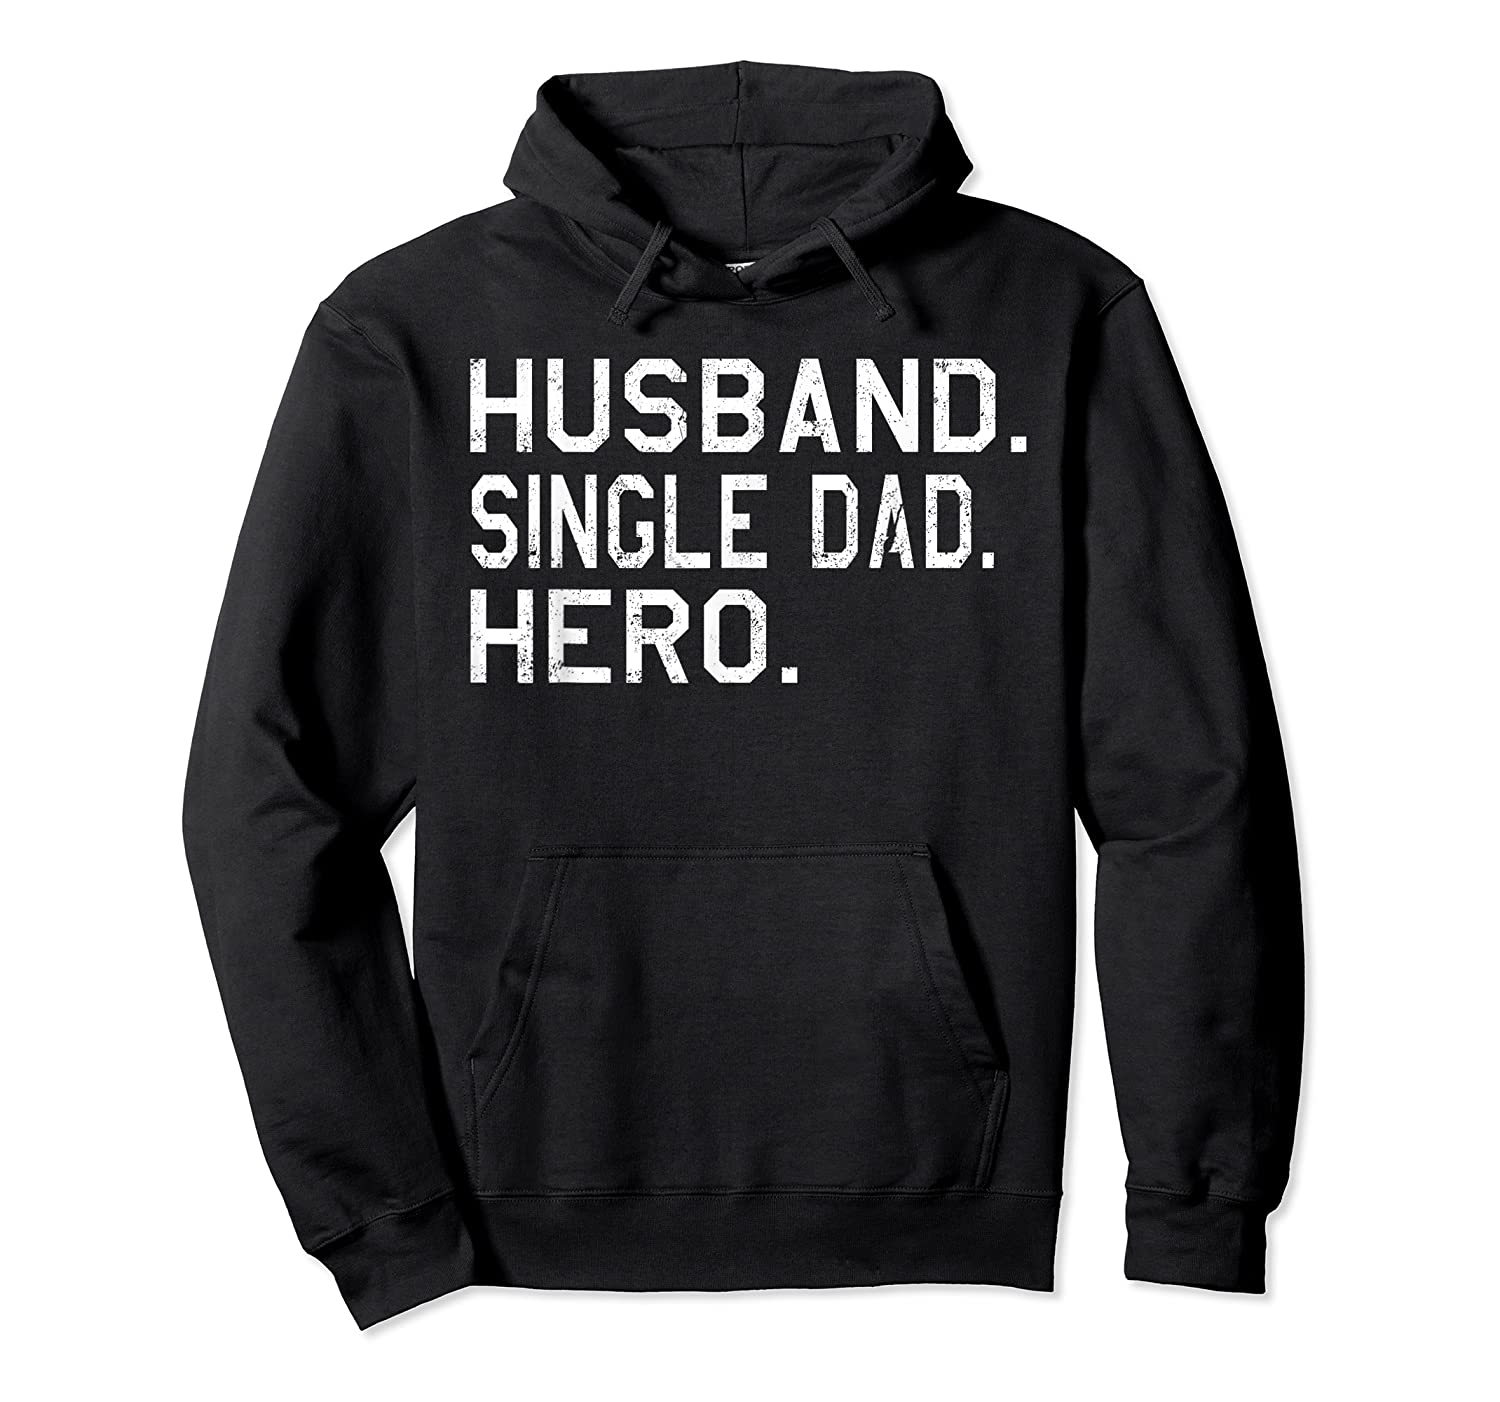 Fathers Day Gift For Husband Single Dad Hero Funny Shirt Unisex Pullover Hoodie